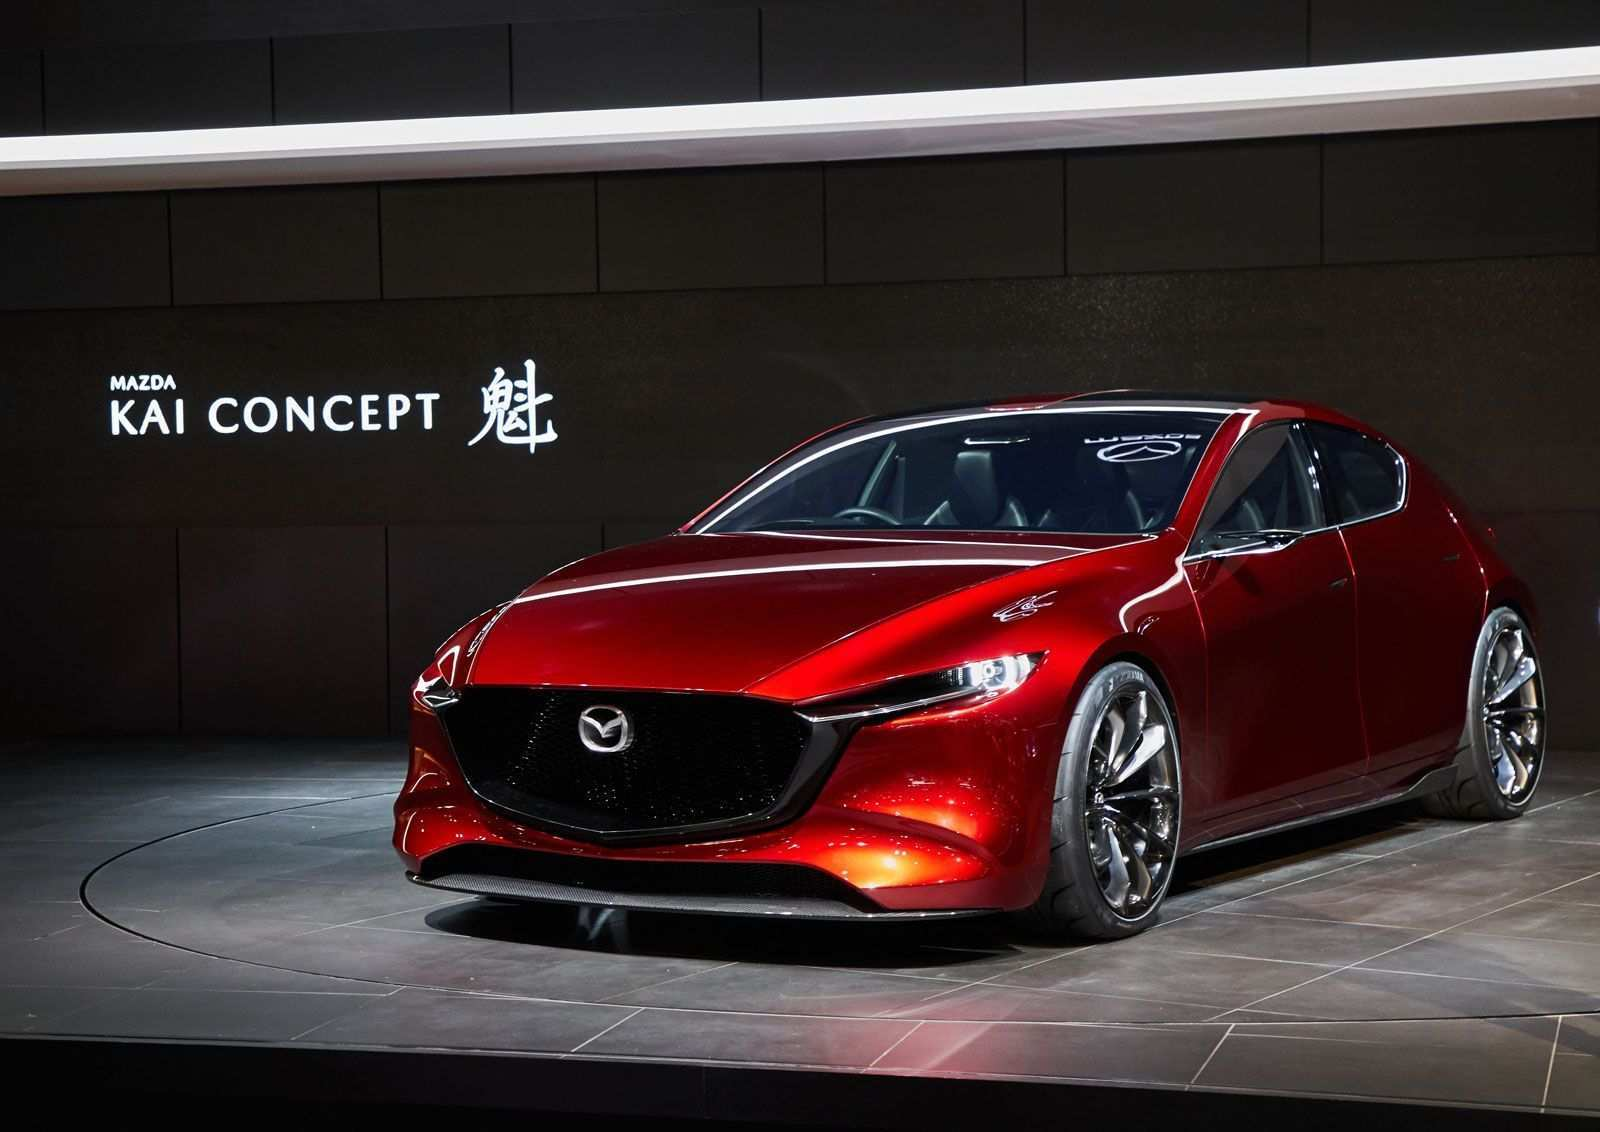 79 New Mazda 3 2019 Lanzamiento Engine